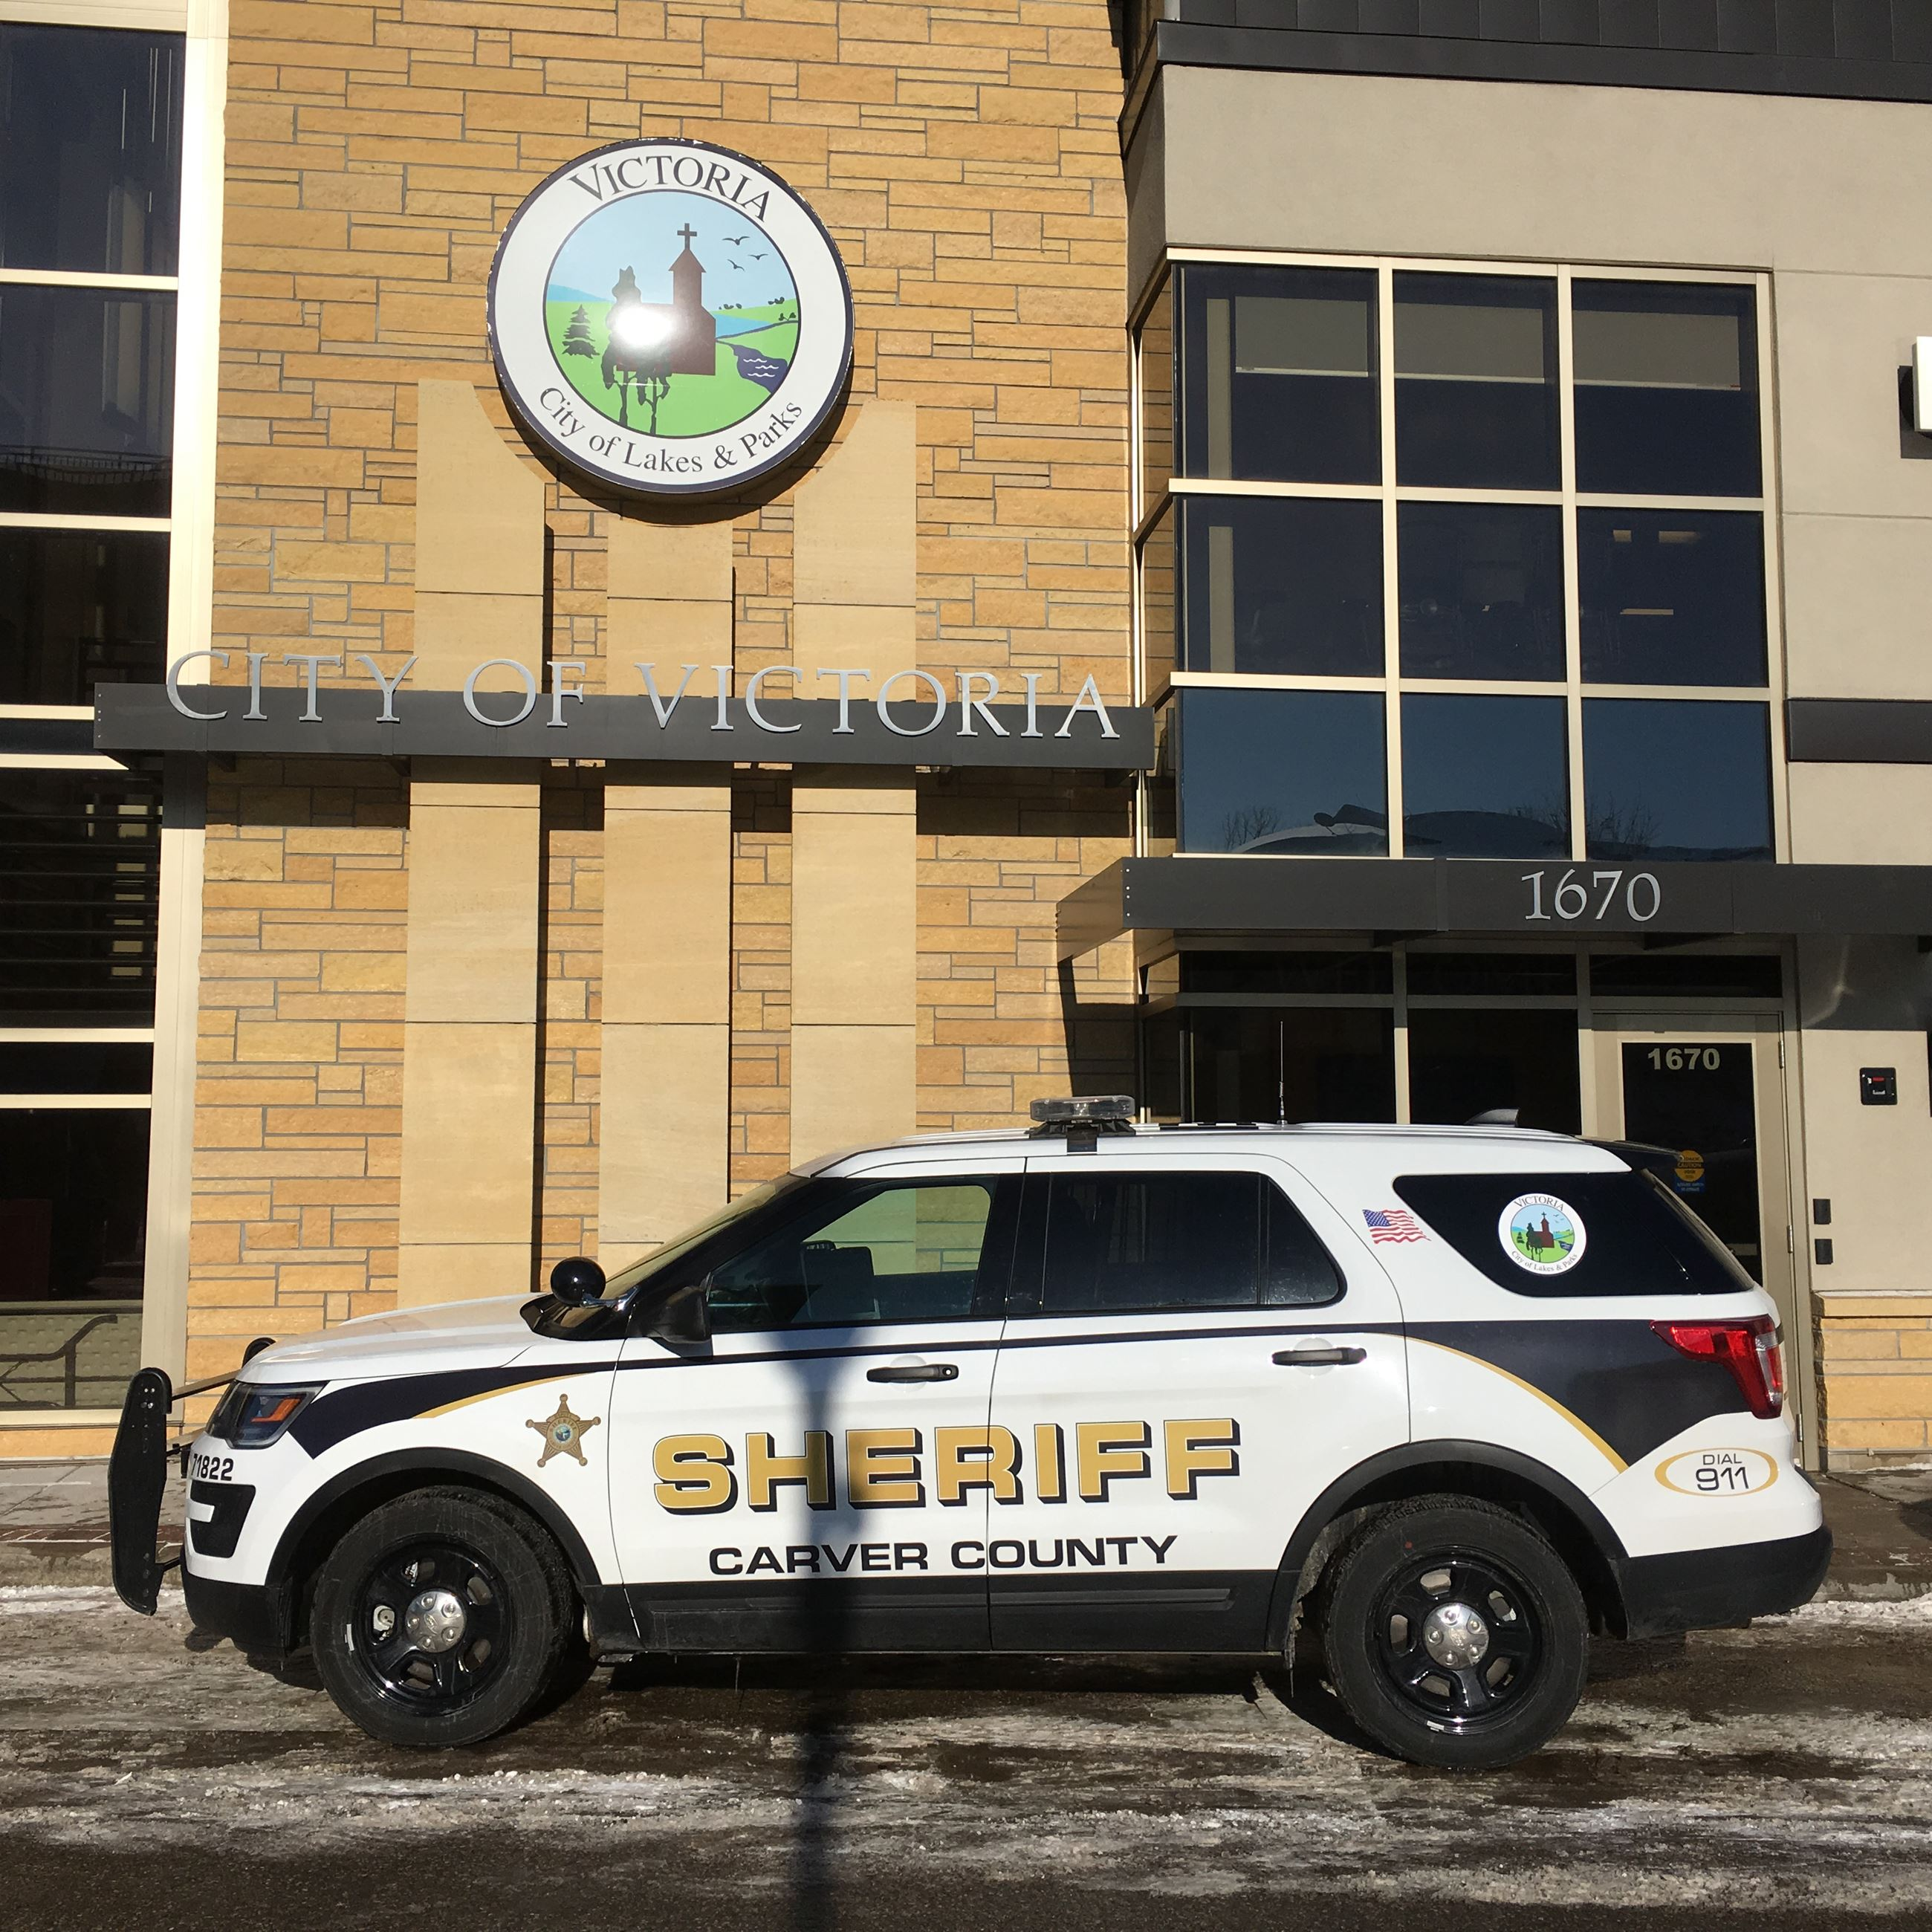 Carver County Sheriff car